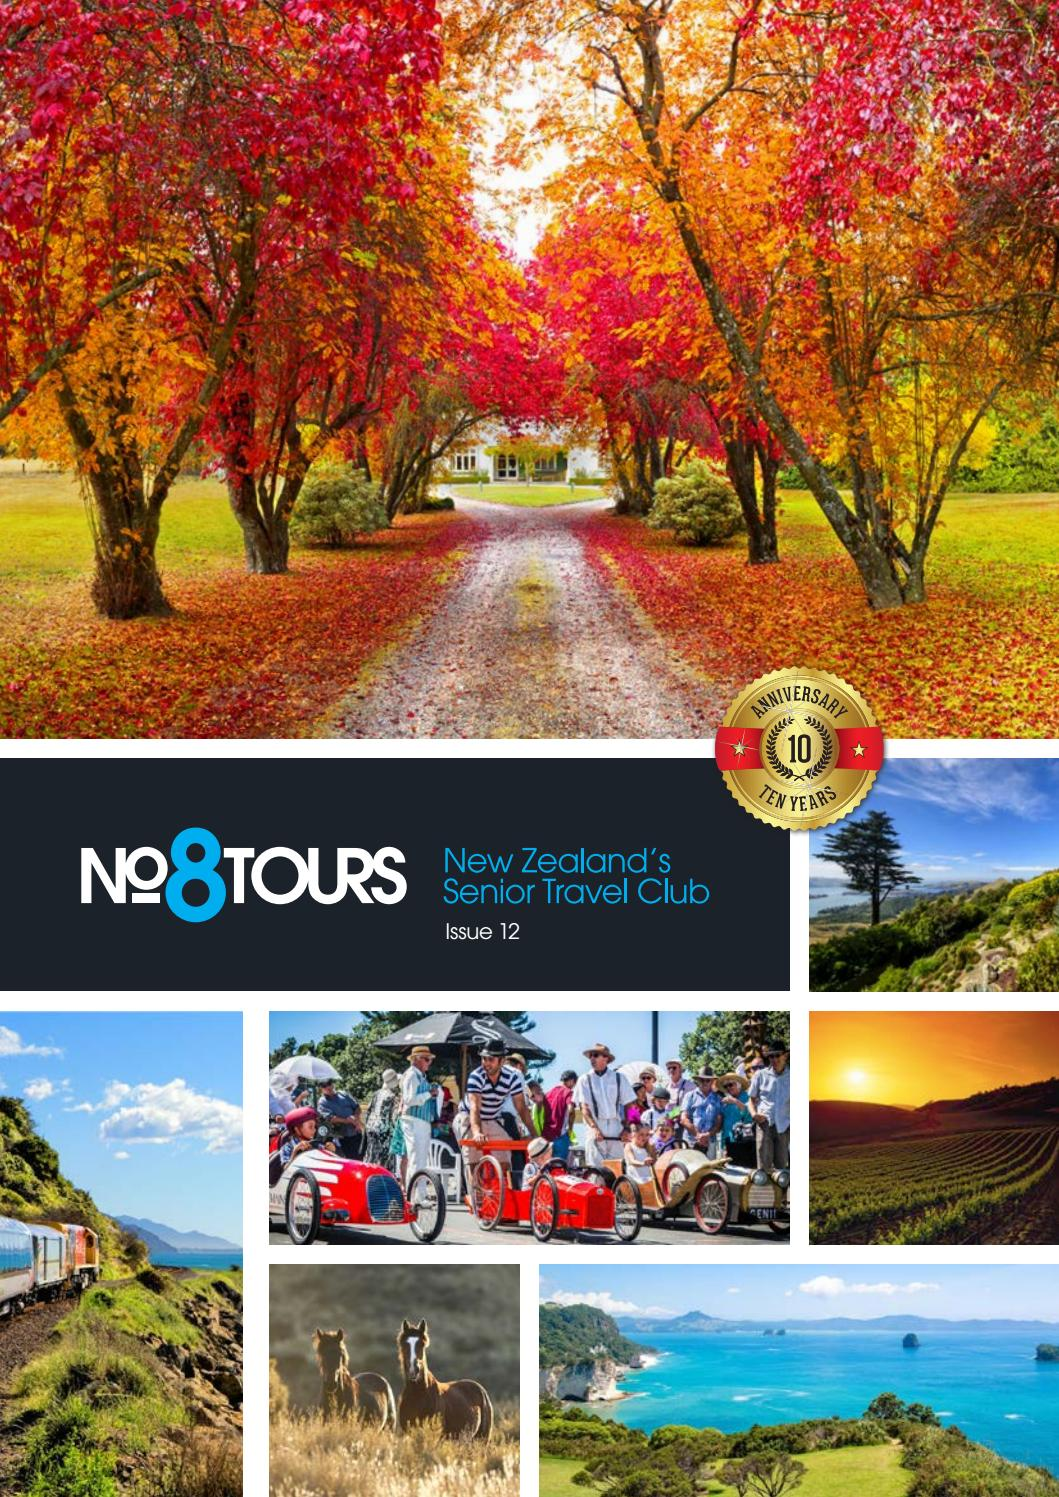 No 8 Tours New Zealand S Senior Travel Club 2018 2019 By Issuuandy Issuu